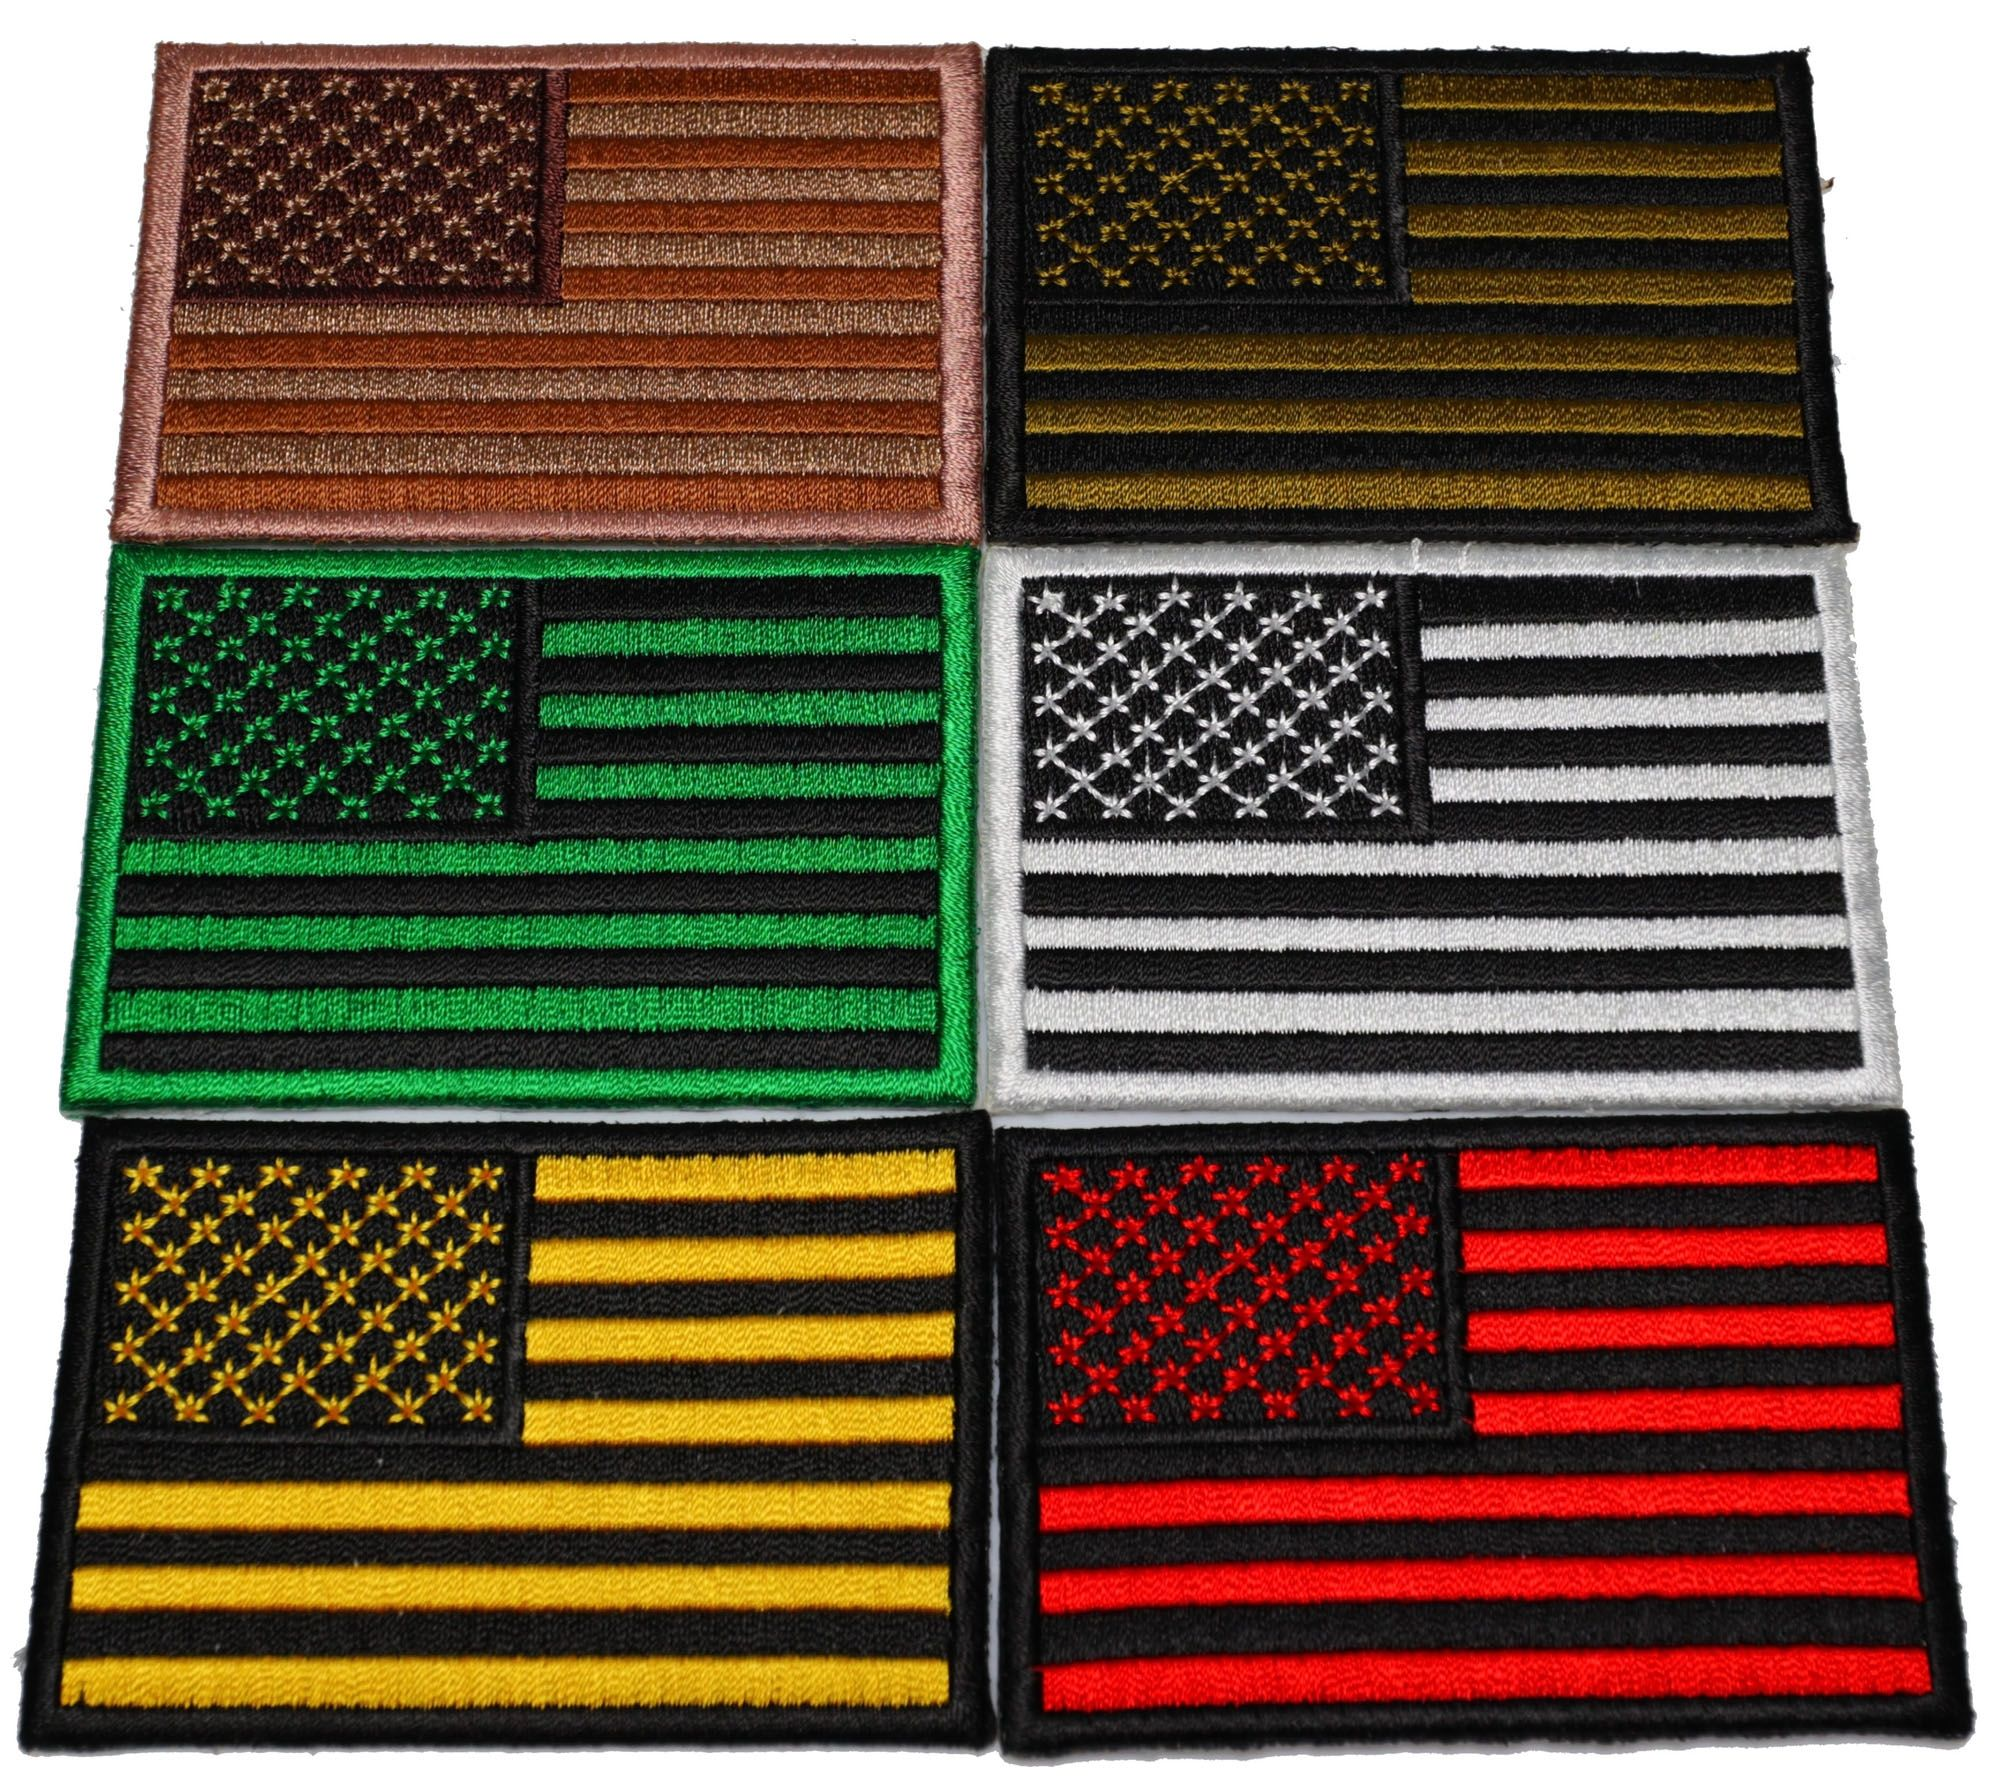 Set Of 6 American Flag Patches In Different Colors American Flag Patch Flag Patches American Flag